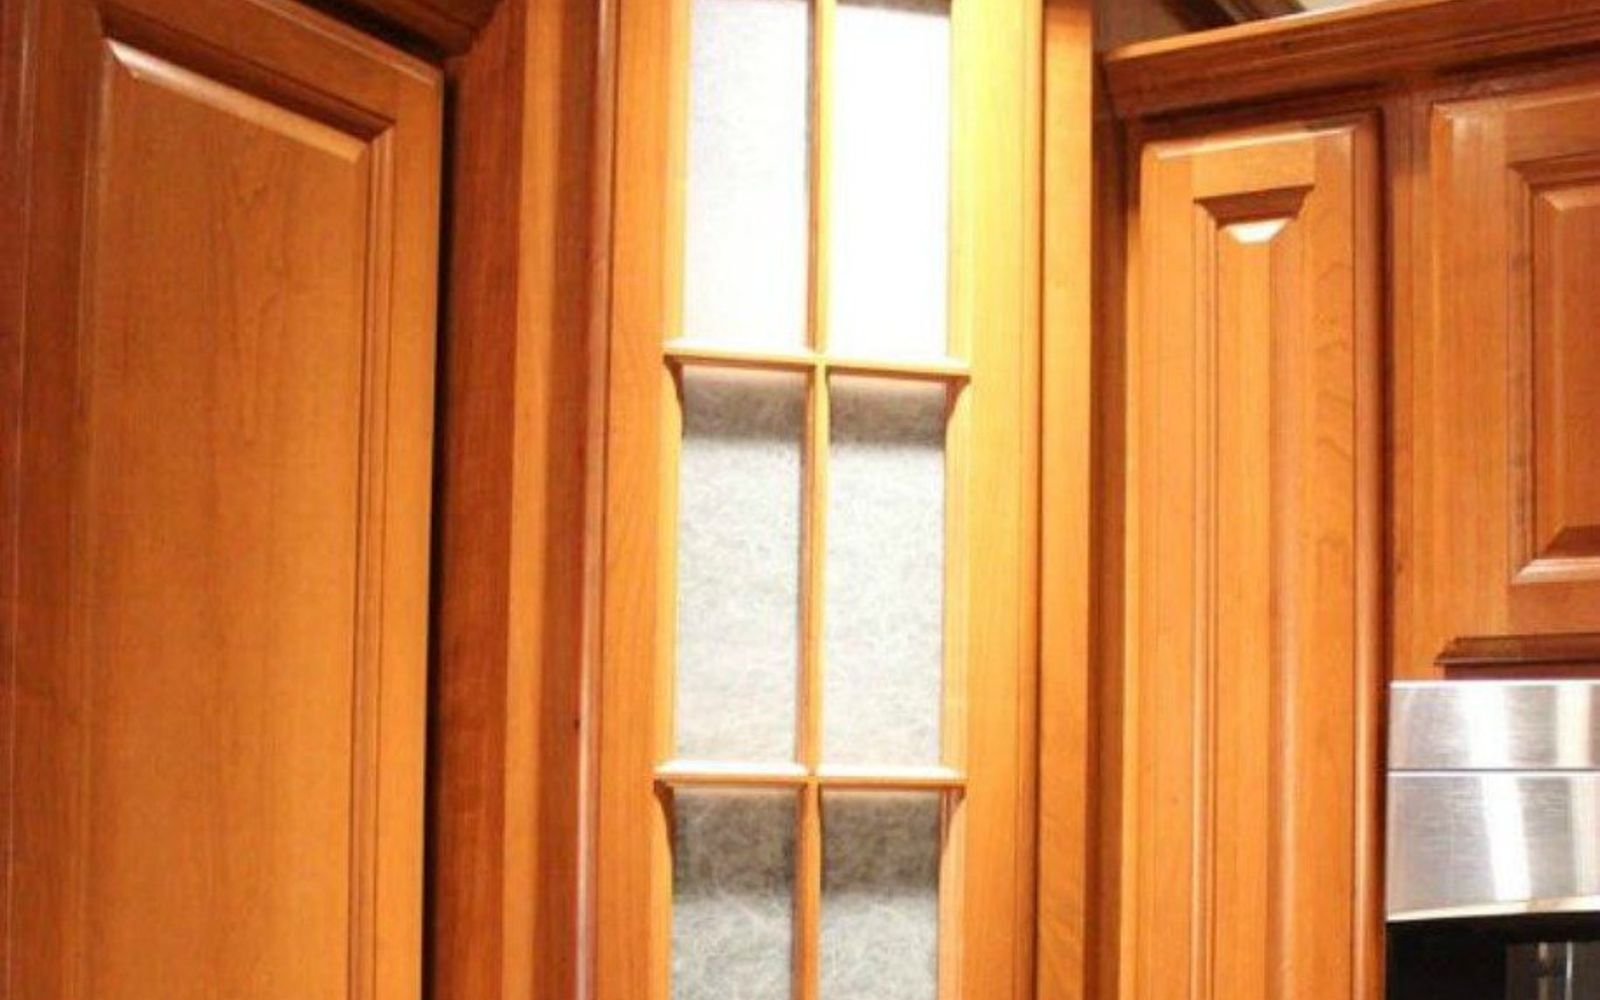 How To Put Glass In Kitchen Cabinet Doors: Transform Your Kitchen Cabinets Without Paint (11 Ideas